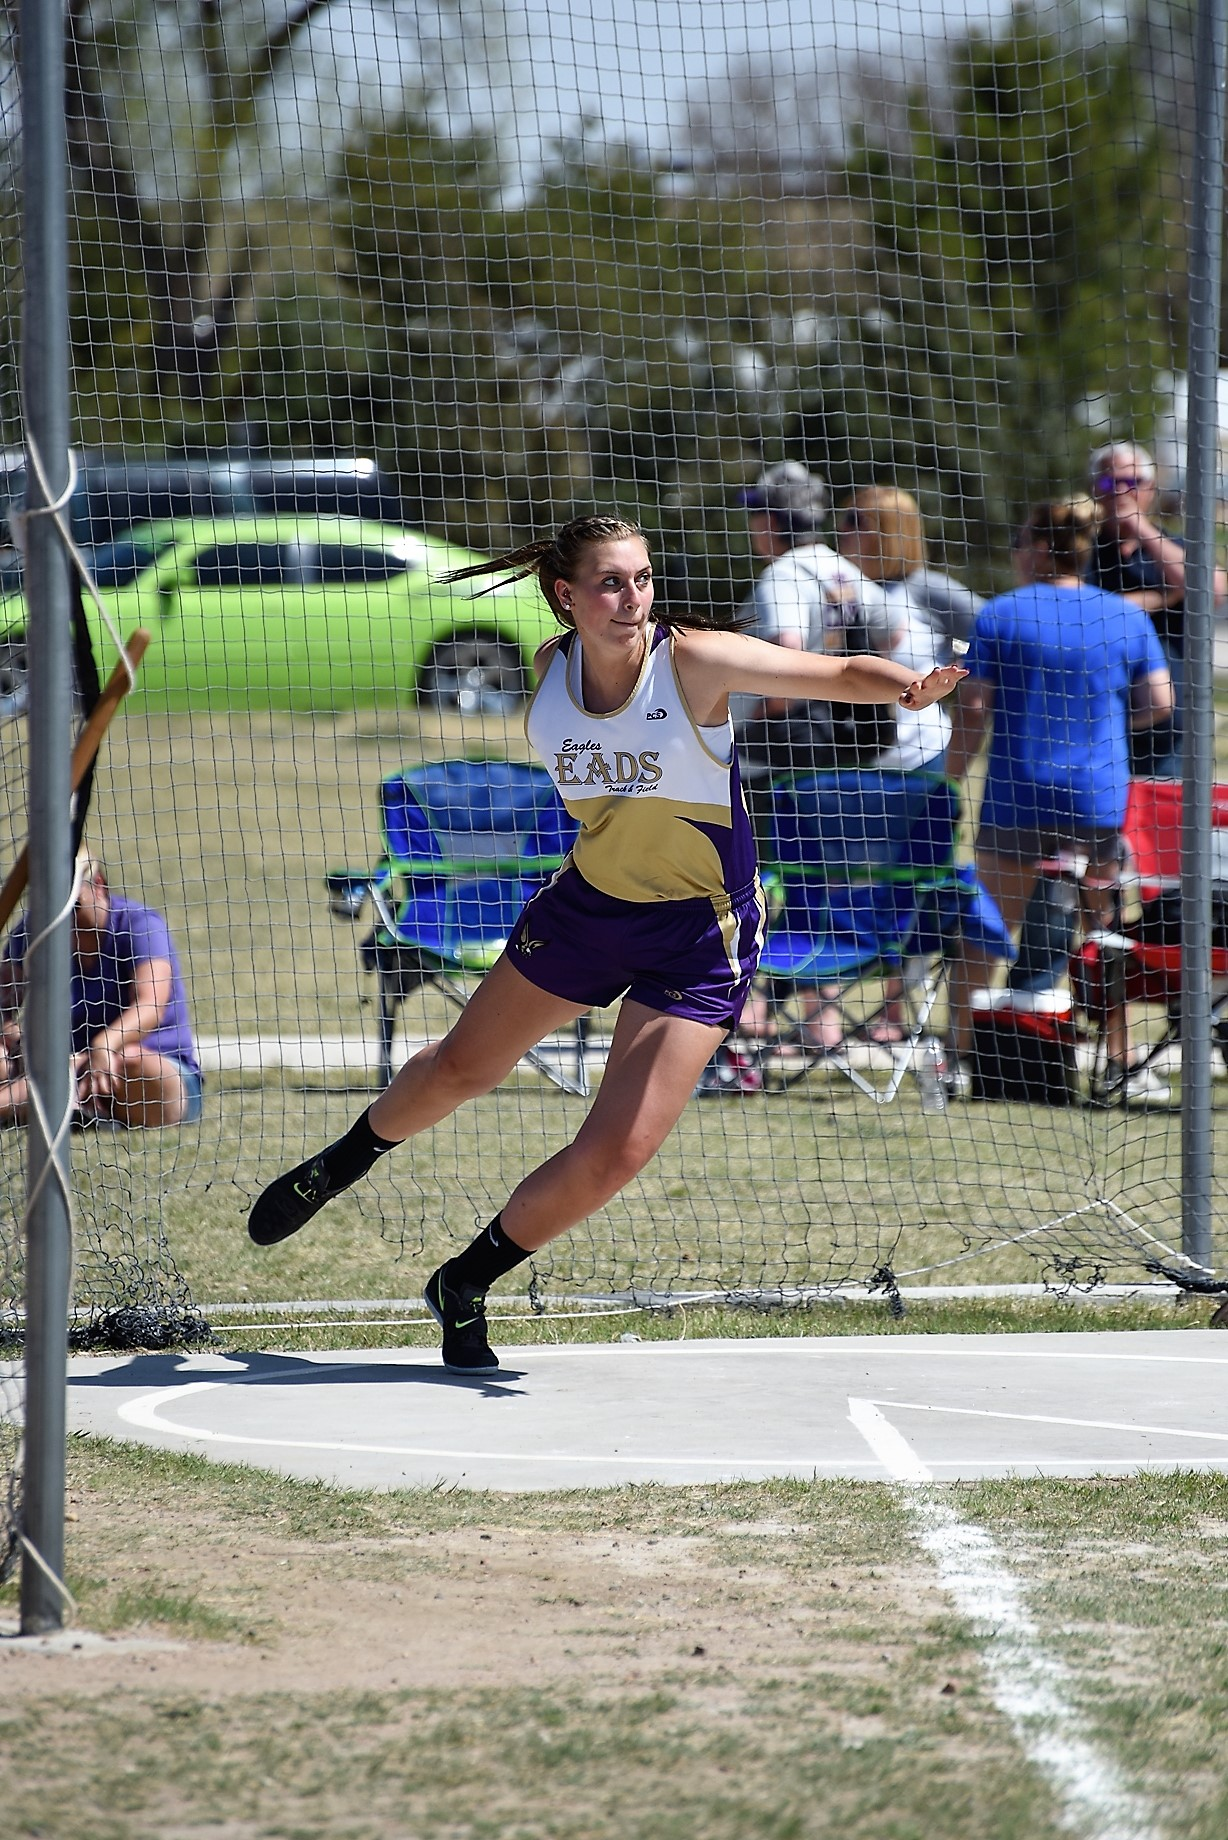 Senior Mariah Smith continues to dominate the discus with two championships over the past week.  (Photo credit: WildcatPridePhoto.com)